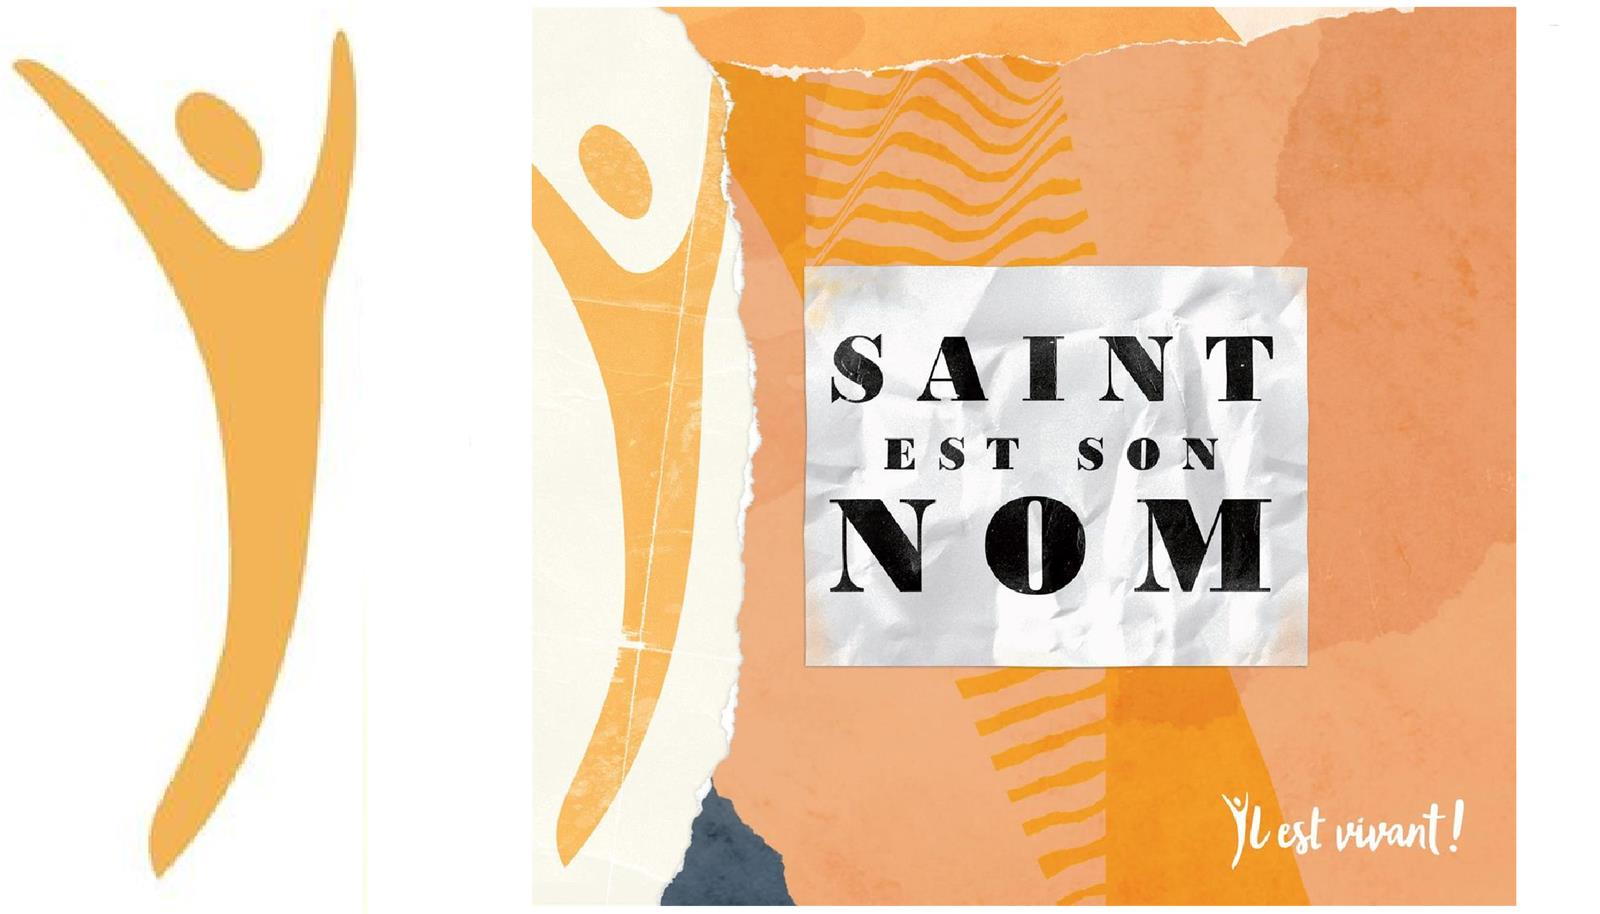 CD 65 - Saint est son nom